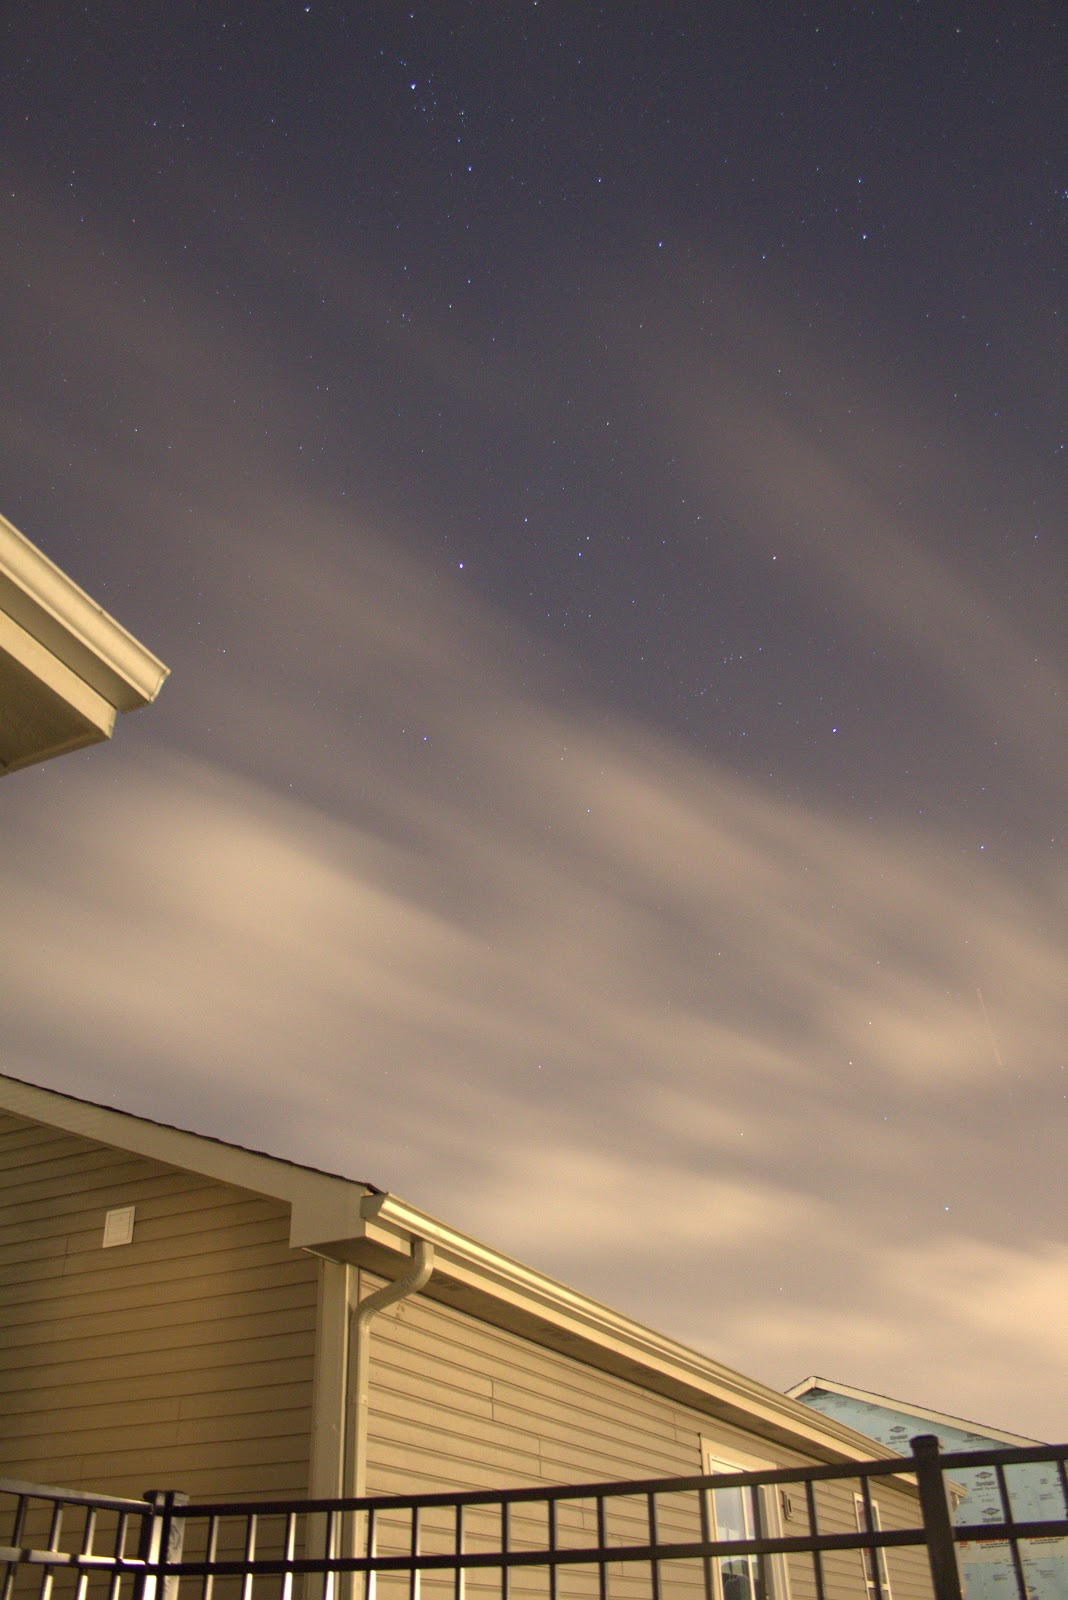 perseus constellation over house with clouds